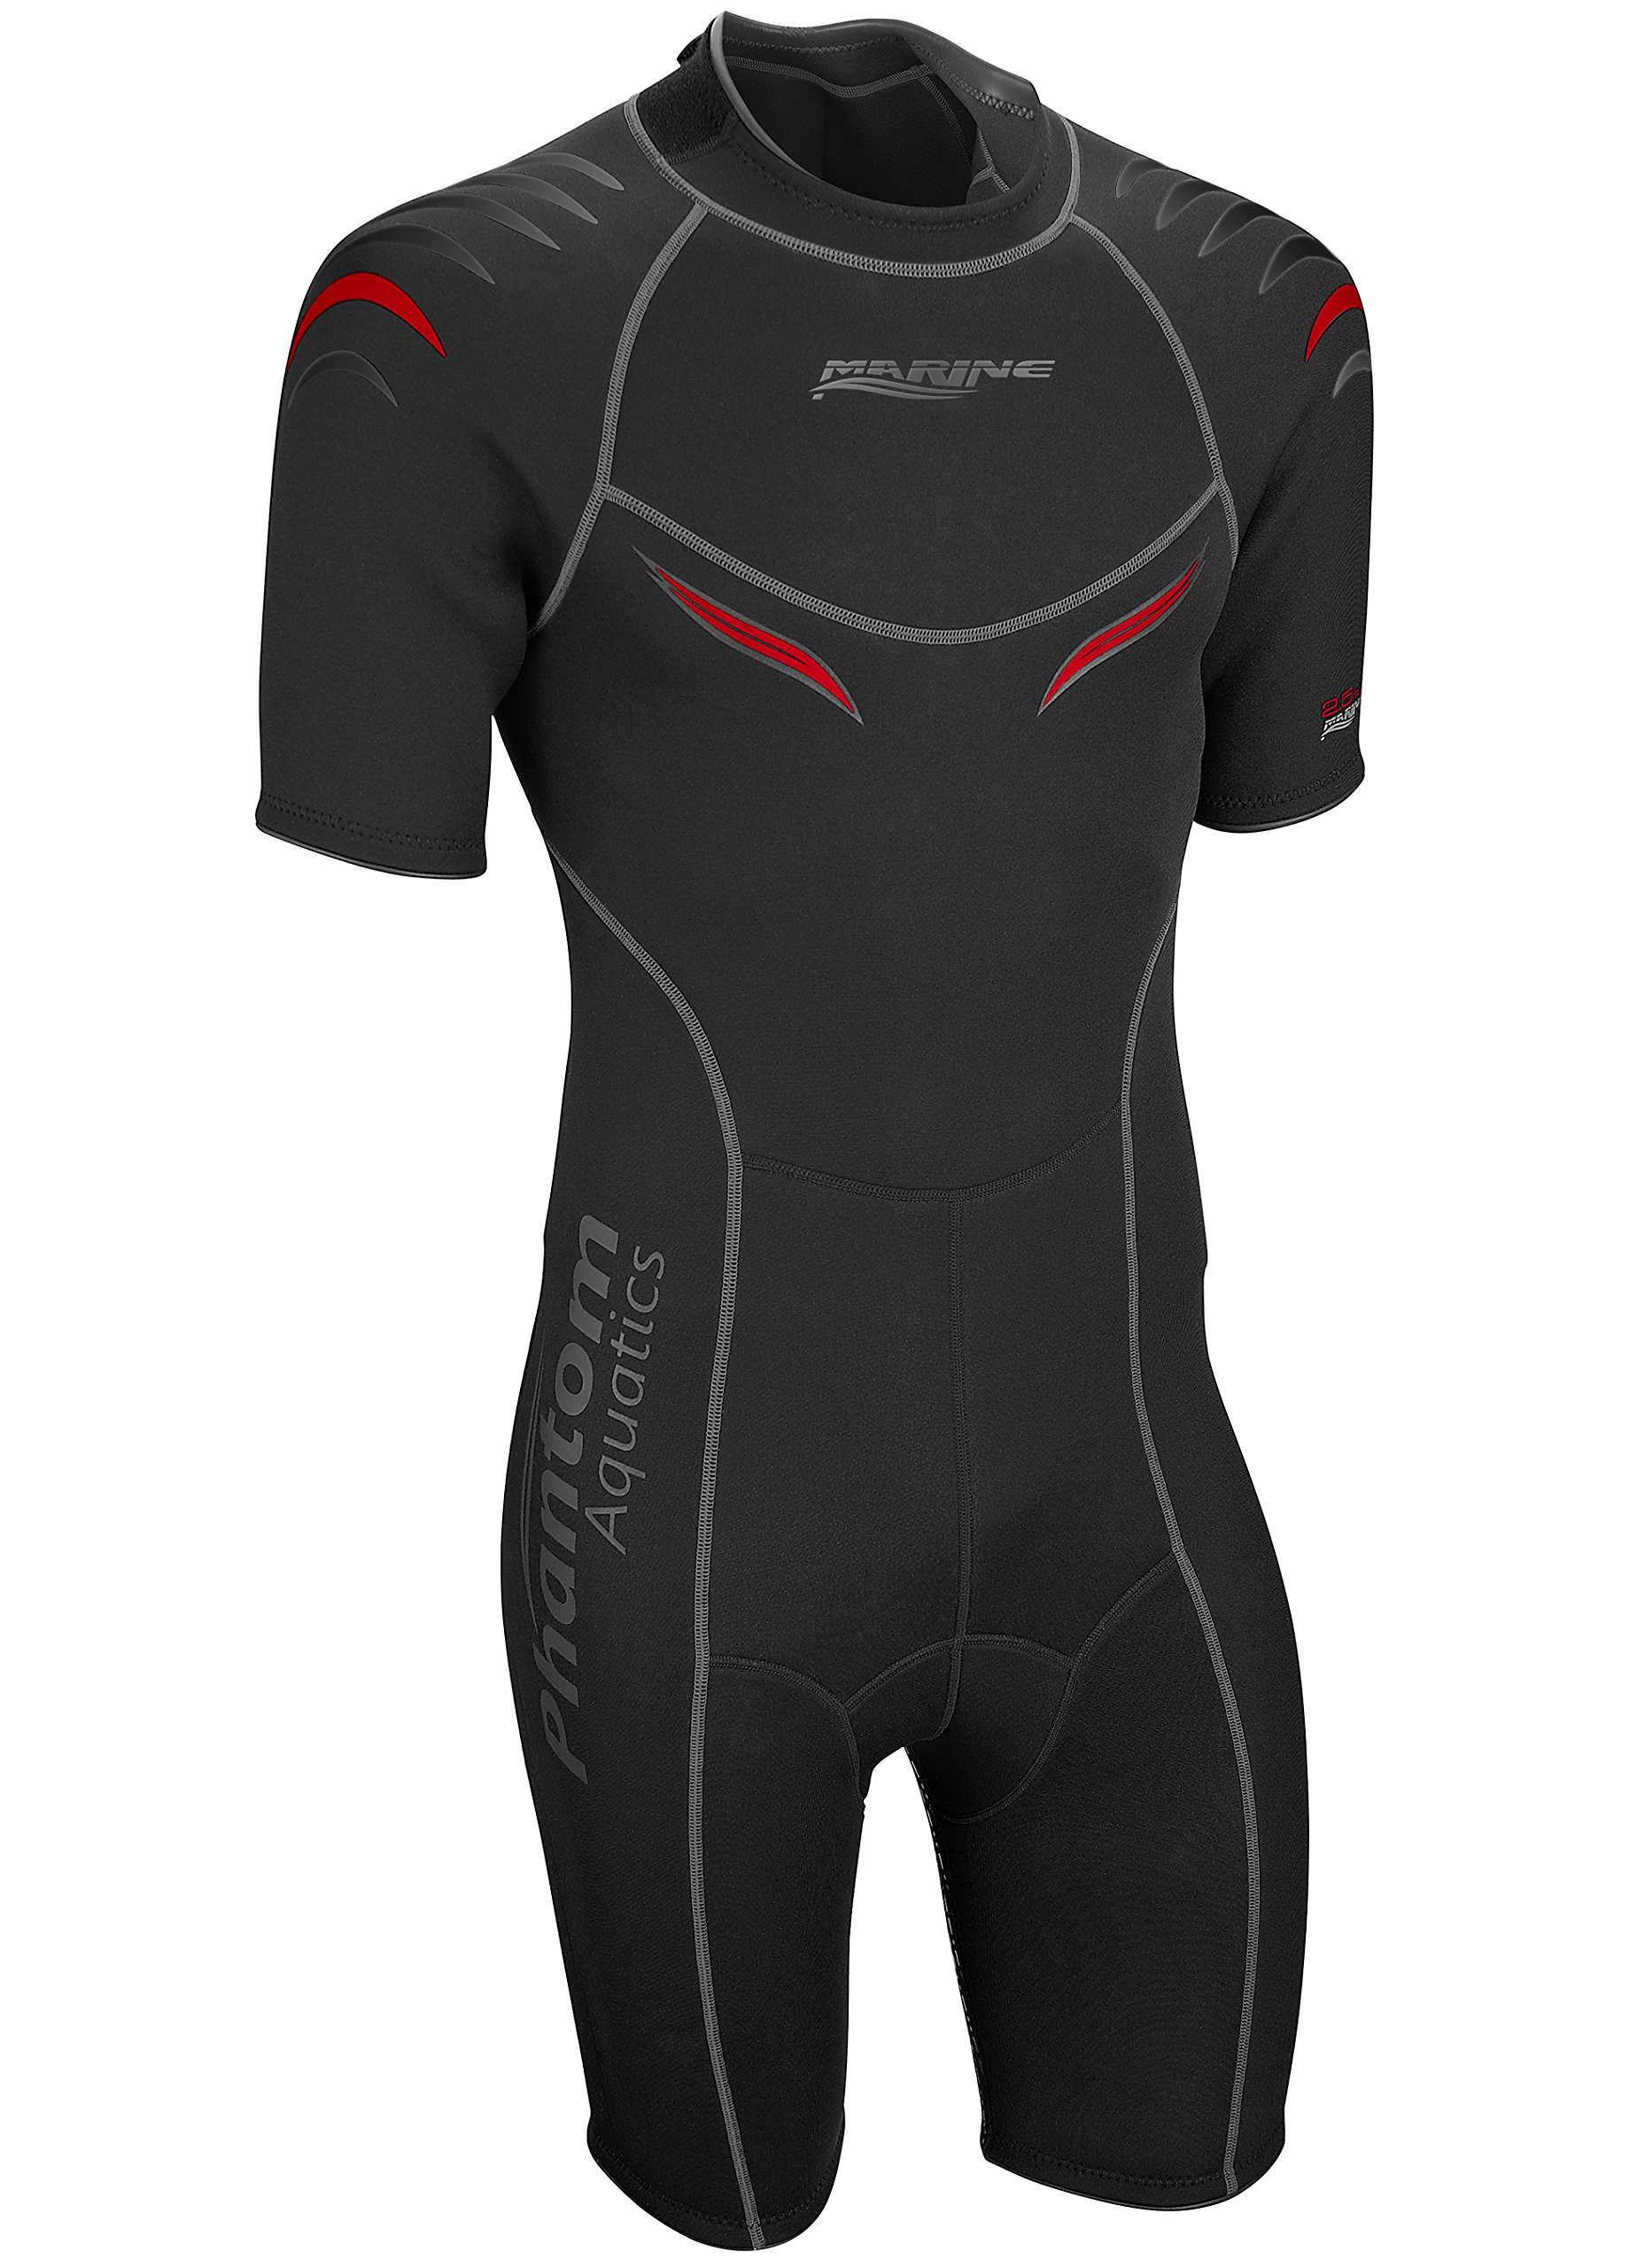 Phantom Aquatics Marine Men's Shorty Wetsuit, Black Red - Medium by Phantom Aquatics